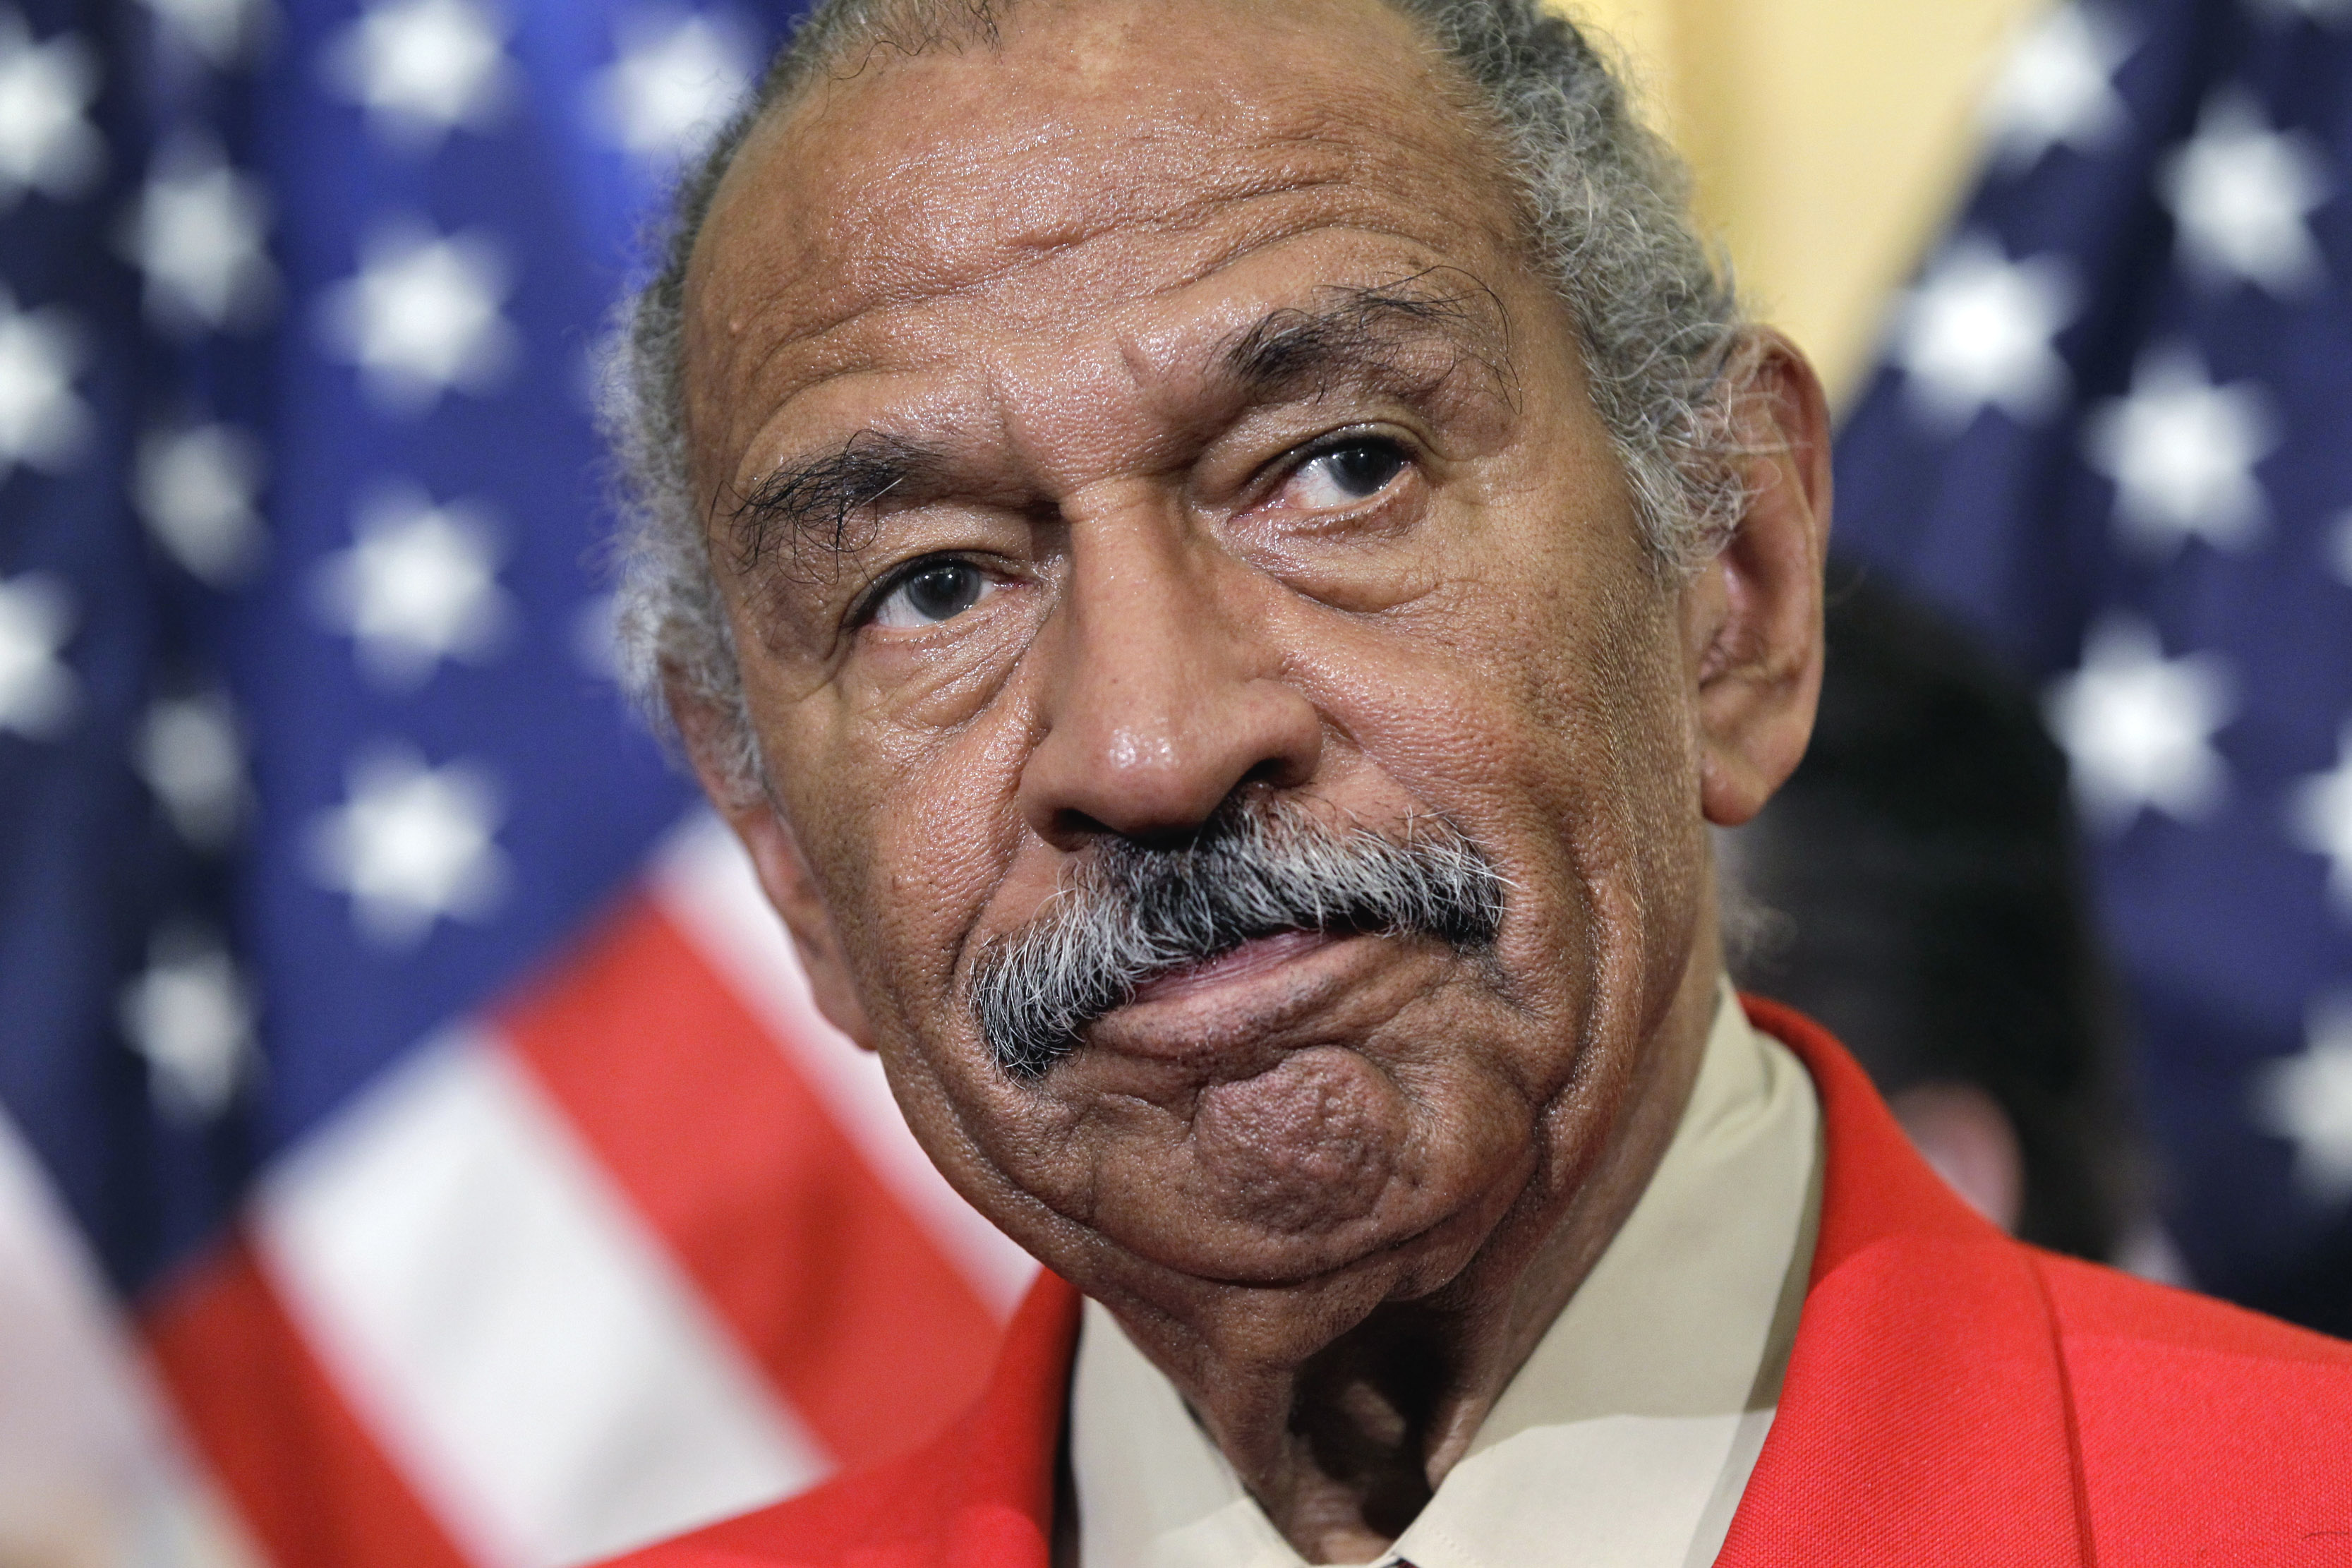 File - In this April 4, 2011 file photo, Rep. John Conyers, D-Mich., the ranking member of the House Judiciary Committee, listens during a news conference on Capitol Hill in Washington.  Top House Democrat Nancy Pelosi says Conyers, facing sexual misconduct allegations, should resign. (AP Photo/J. Scott Applewhite)